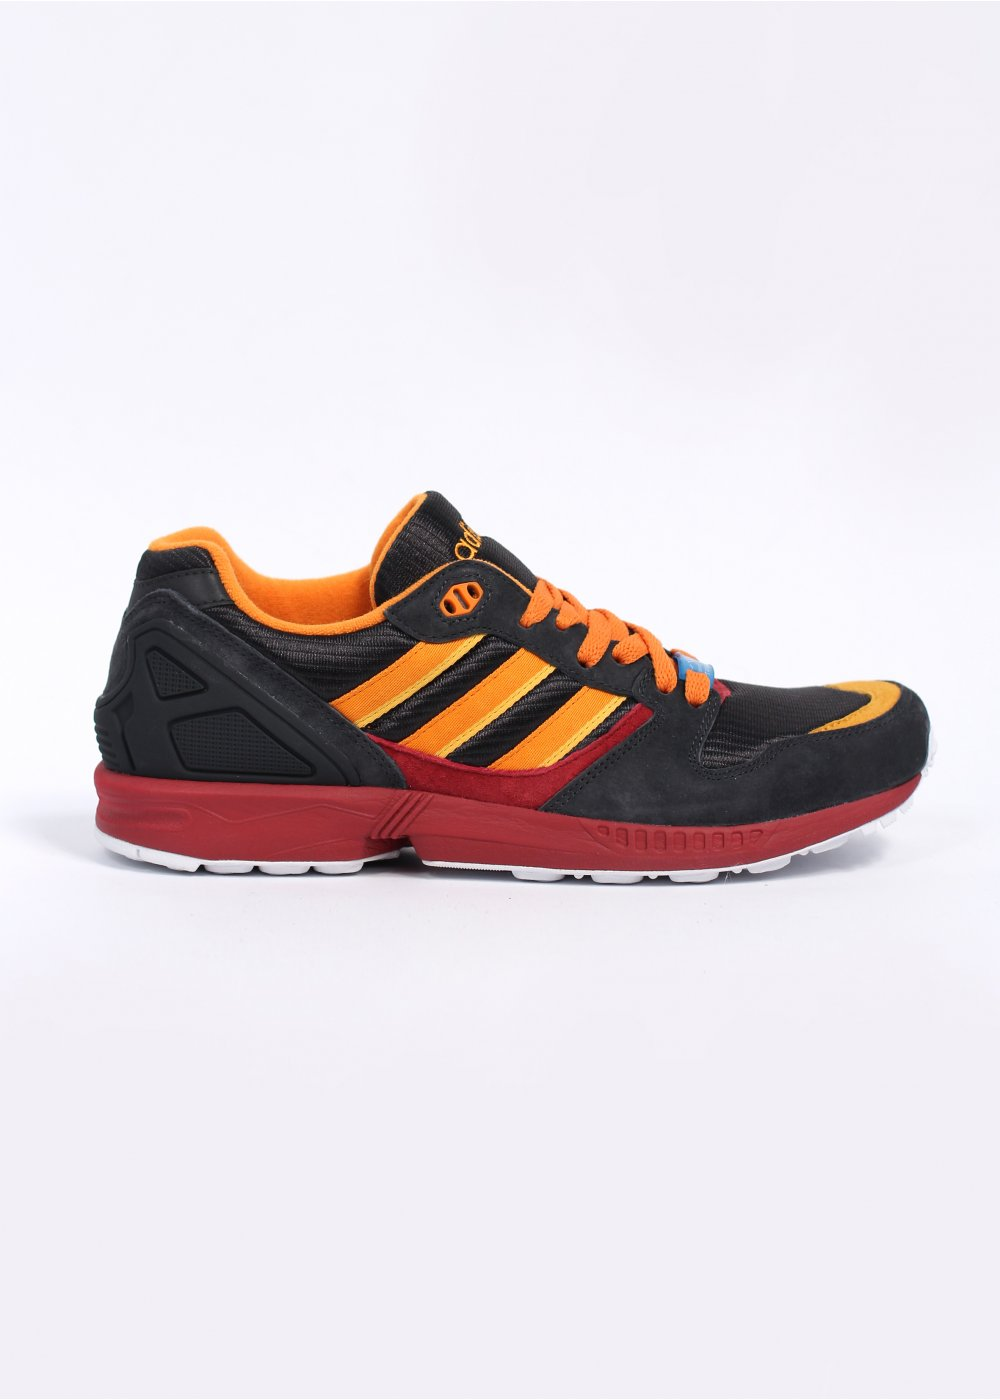 finest selection 24586 65243 adidas Originals Footwear ZX 5000 '25th Anniversary' Trainers - Carbon /  Orange